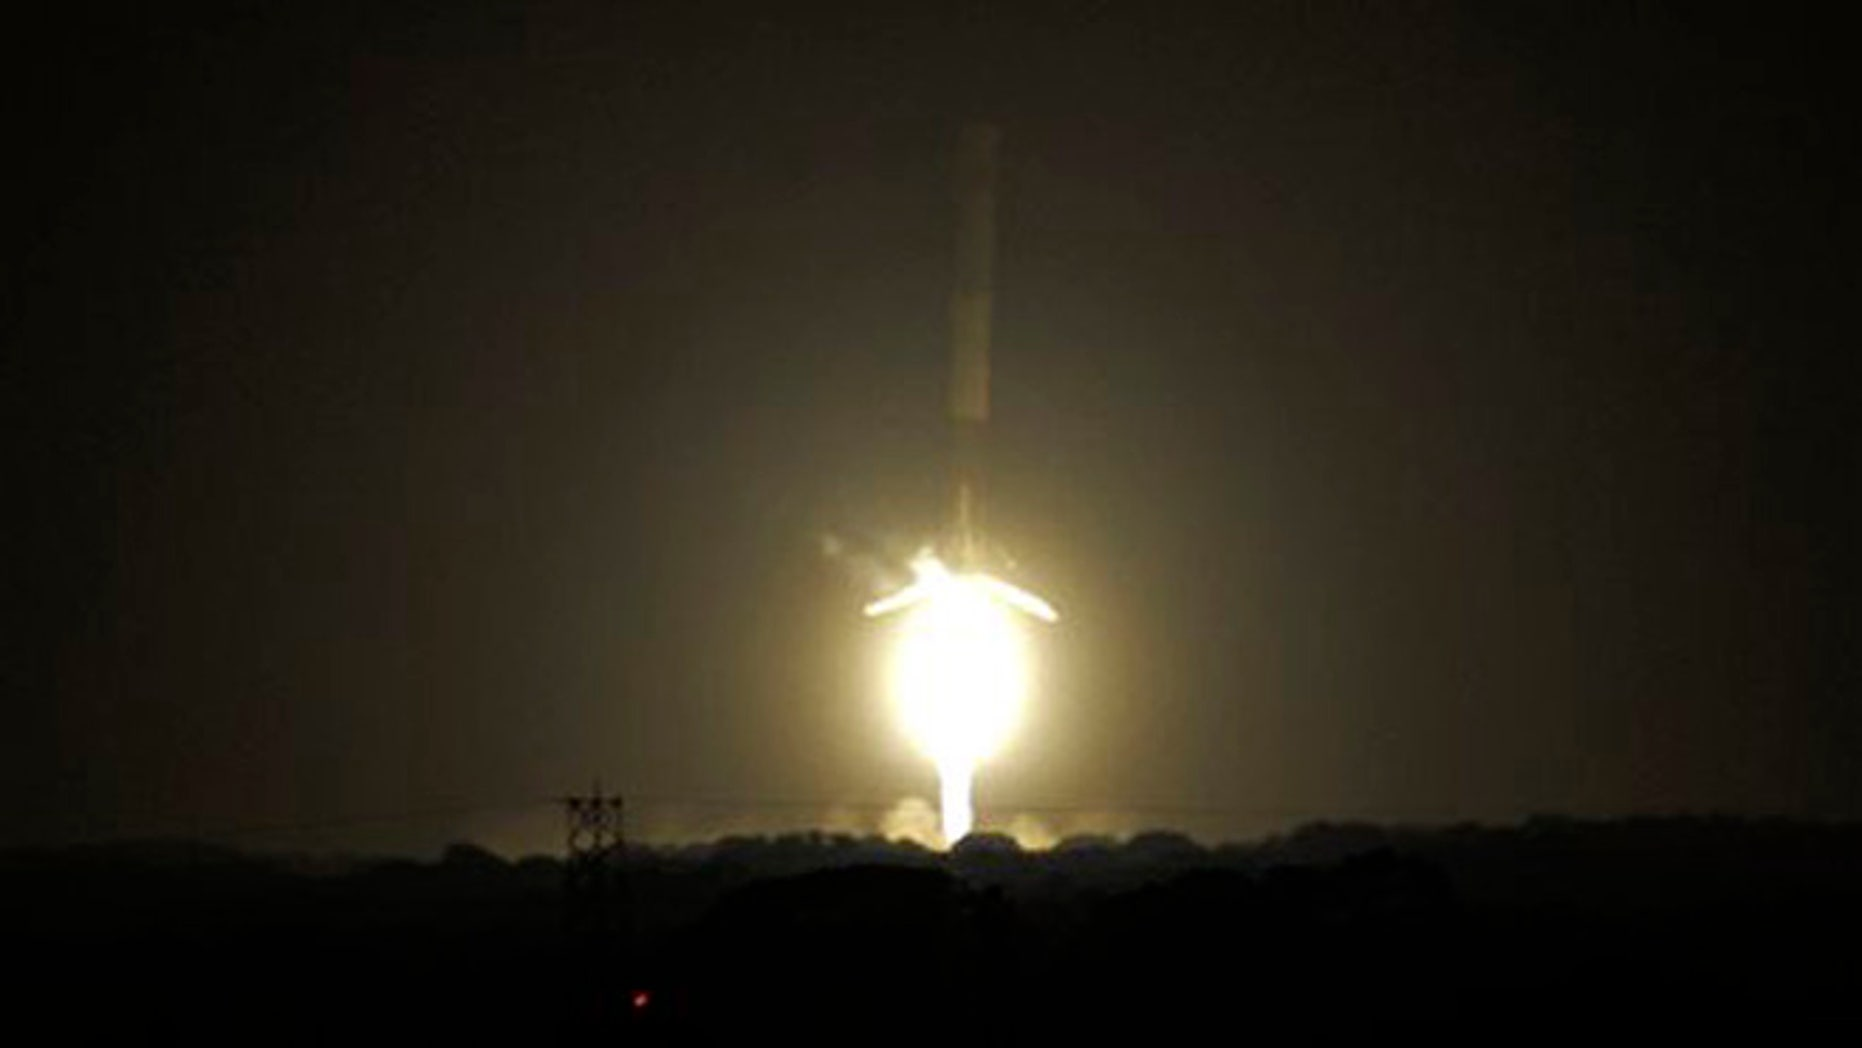 The SpaceX Falcon 9 rocket successfully lands at historic Complex 13 at Cape Canaveral Air Force Station, Monday, Dec. 21, 2015. The rocket, carrying 11 communications satellites for Orbcomm, Inc., is the first launch of the rocket since a failed mission to the International Space Station in June. (Craig Bailey/Florida Today via AP)